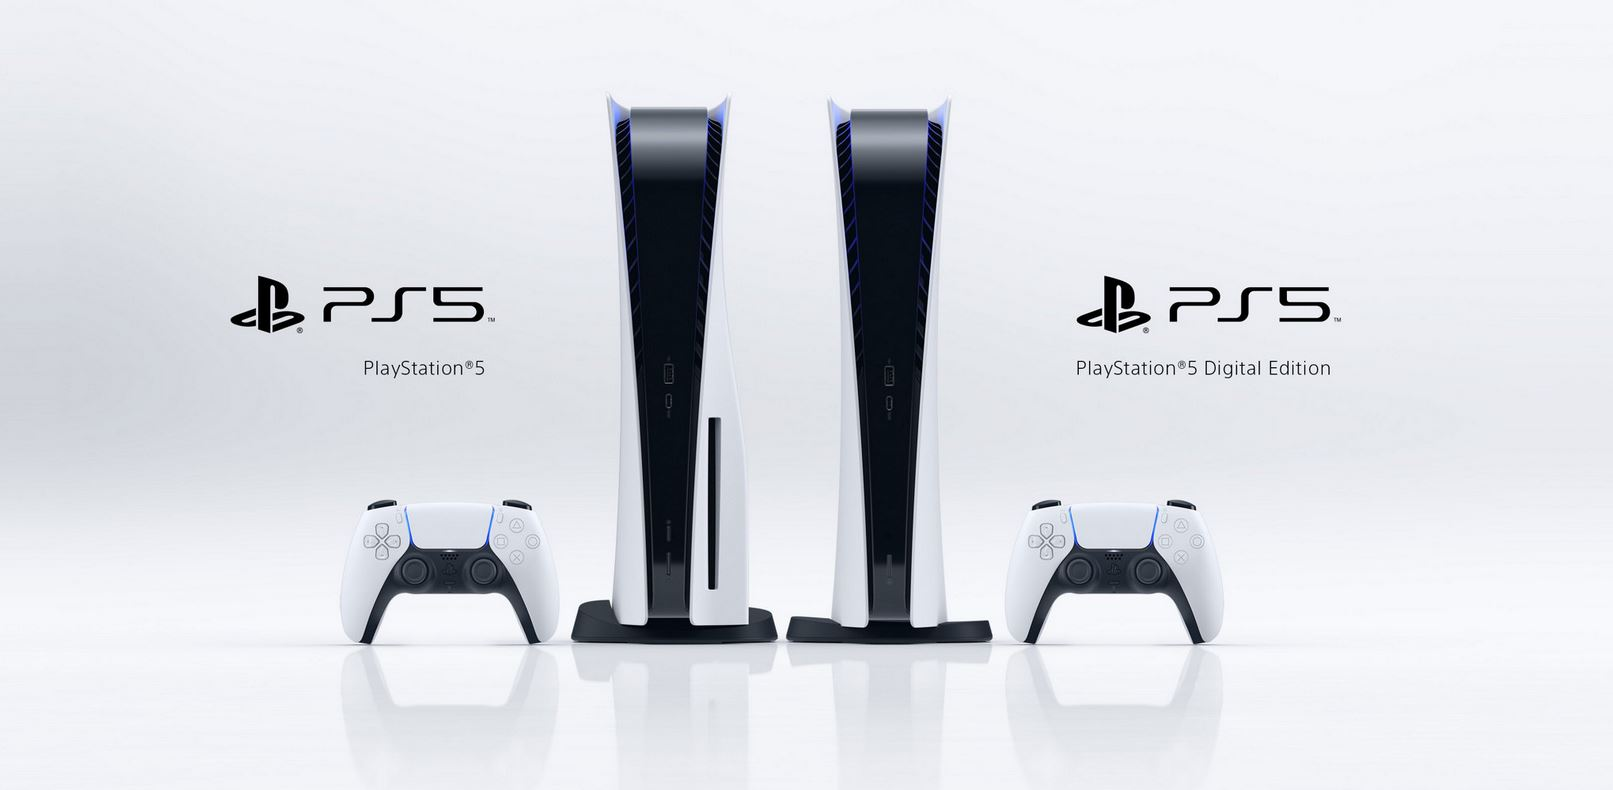 PS 5 and PS 5 Digital Edition